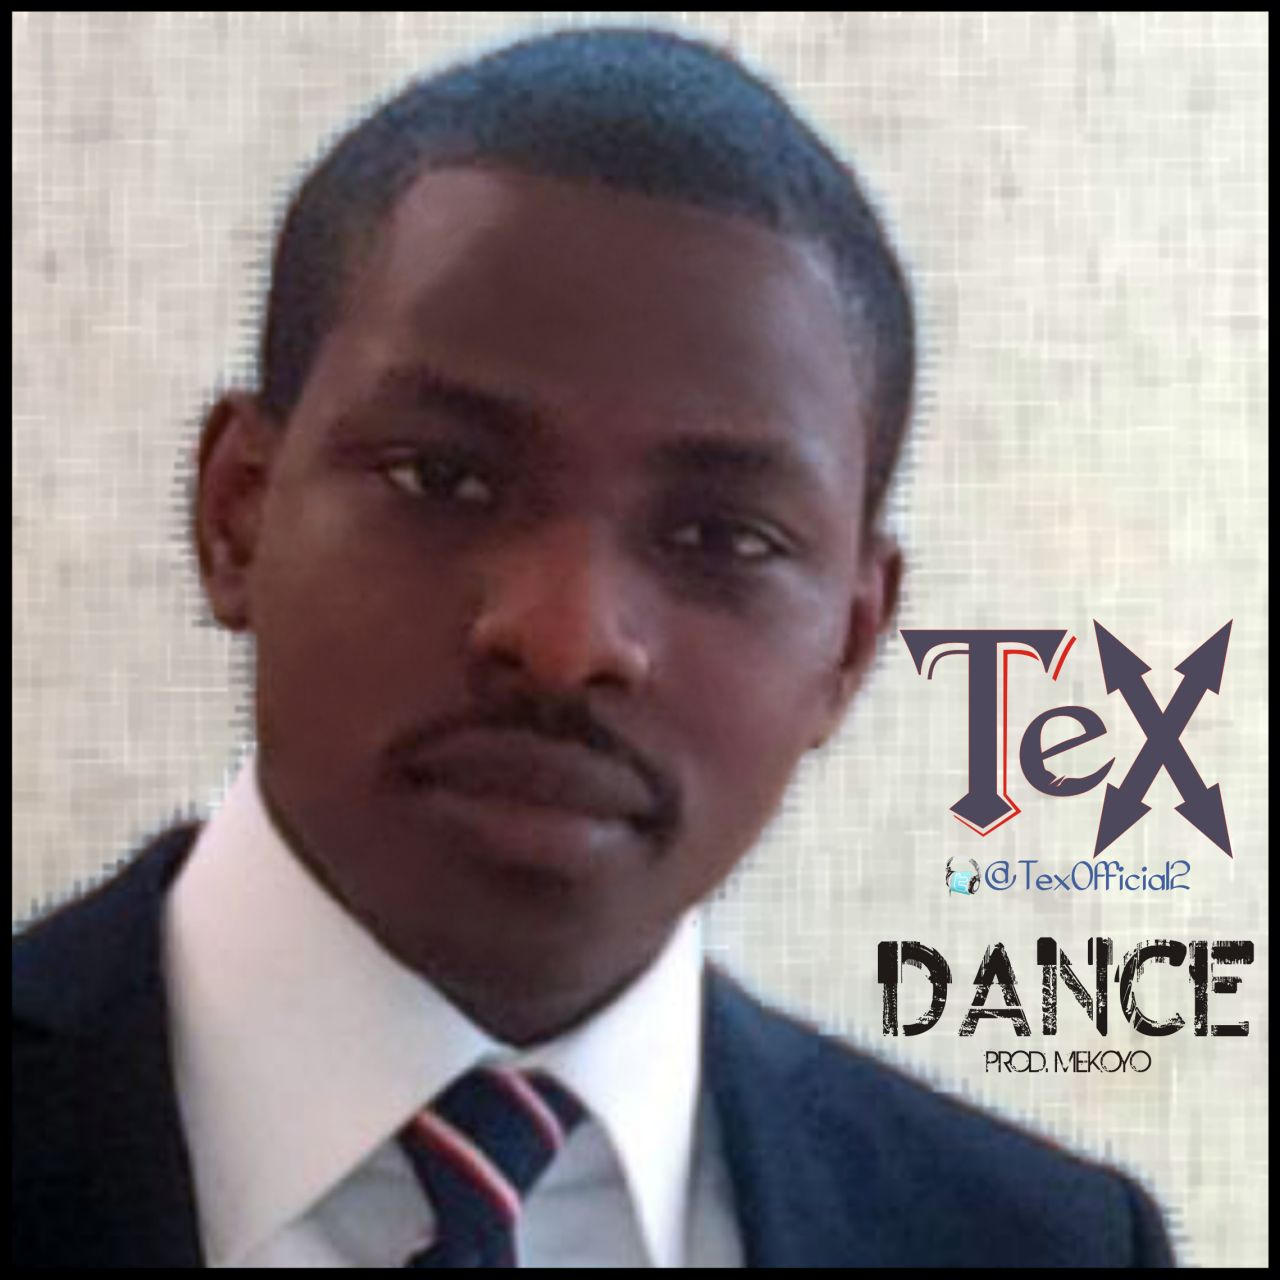 DANCE - Tex [@TexOfficial2]